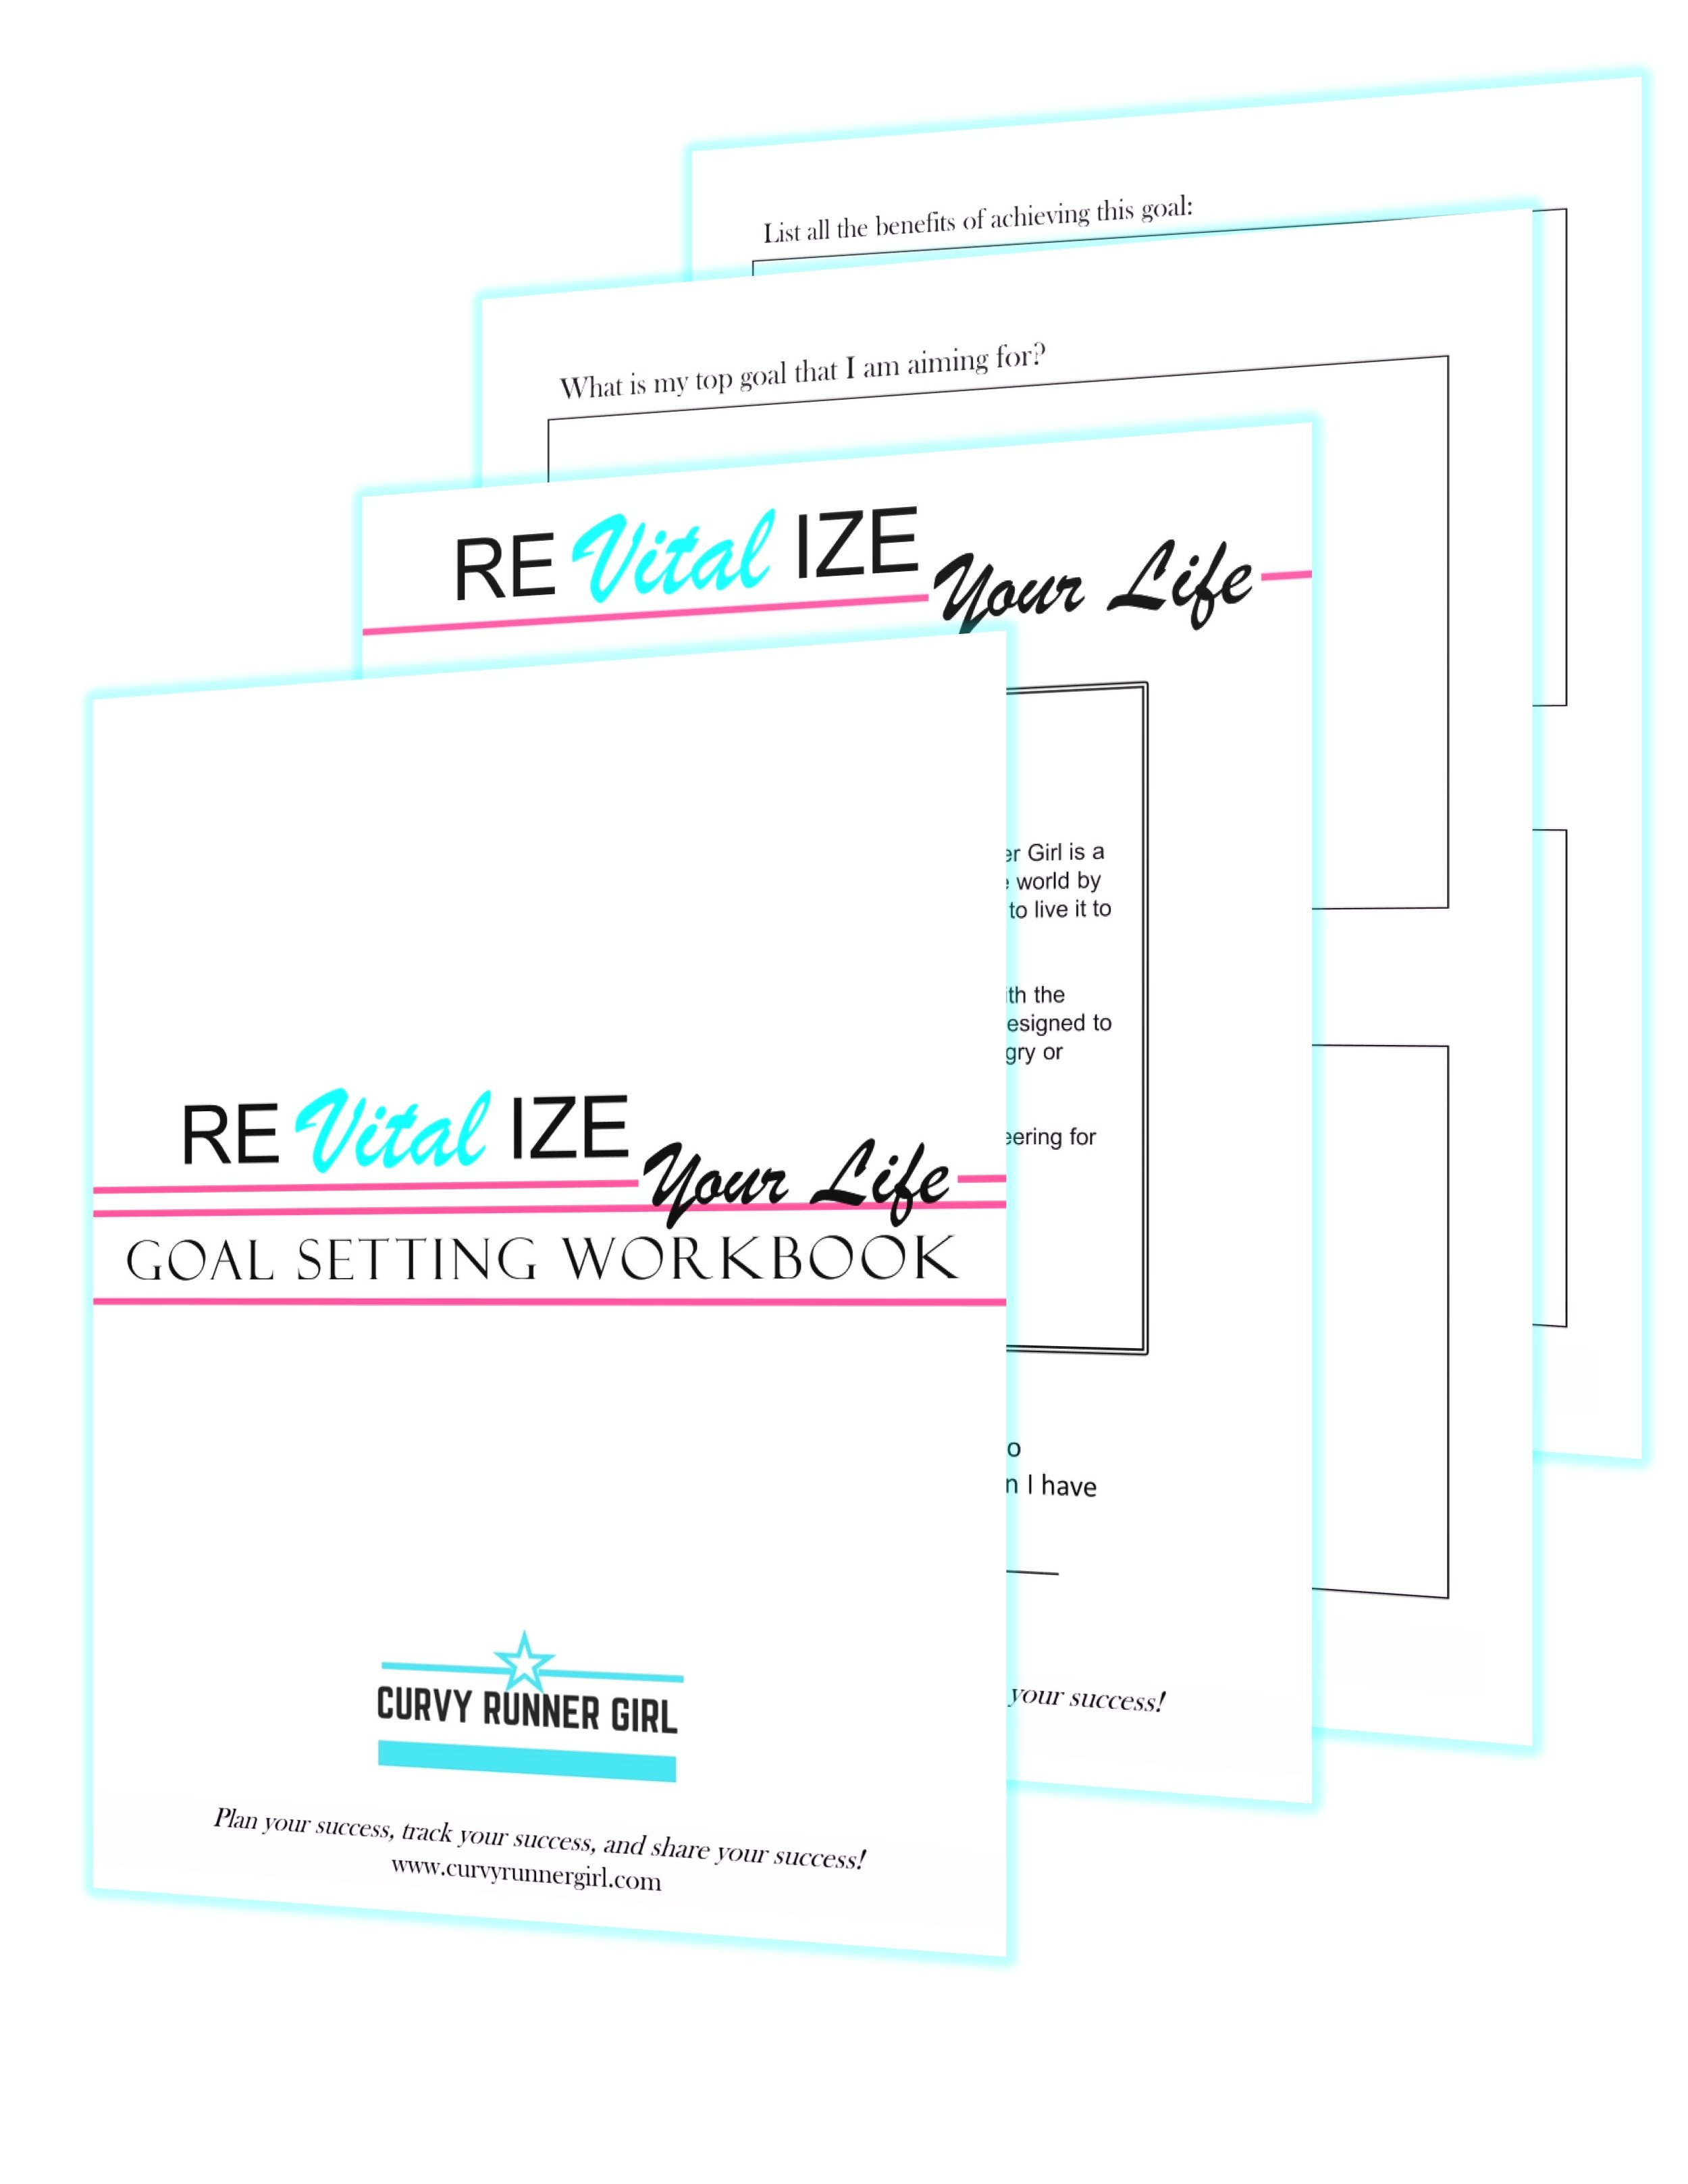 Signup Goal Setting Workbook.jpg